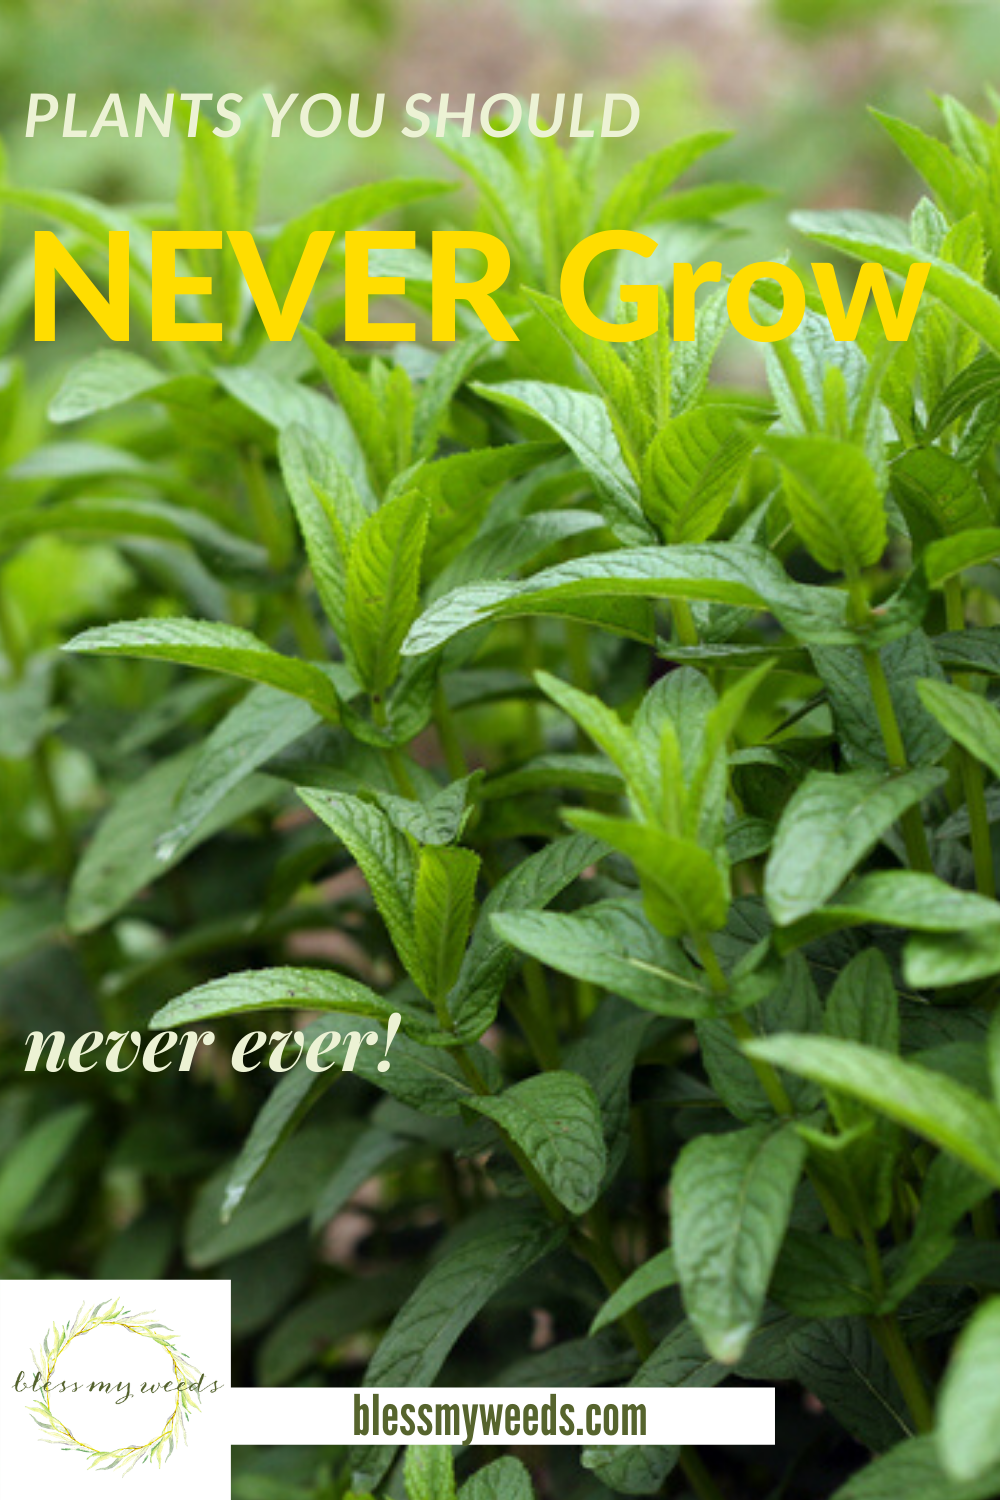 Just because something looks beautiful, doesn't mean it is going to be good in your yard. Plants, we are talking plants. Sometimes knowing what not to do is more helpful than knowing what to do. Read on to learn more about plants you should never grow.#plantsyoushouldnevergrow #avoidgrowingtheseplants #planttips #gardeningtips #beesandrosesblog